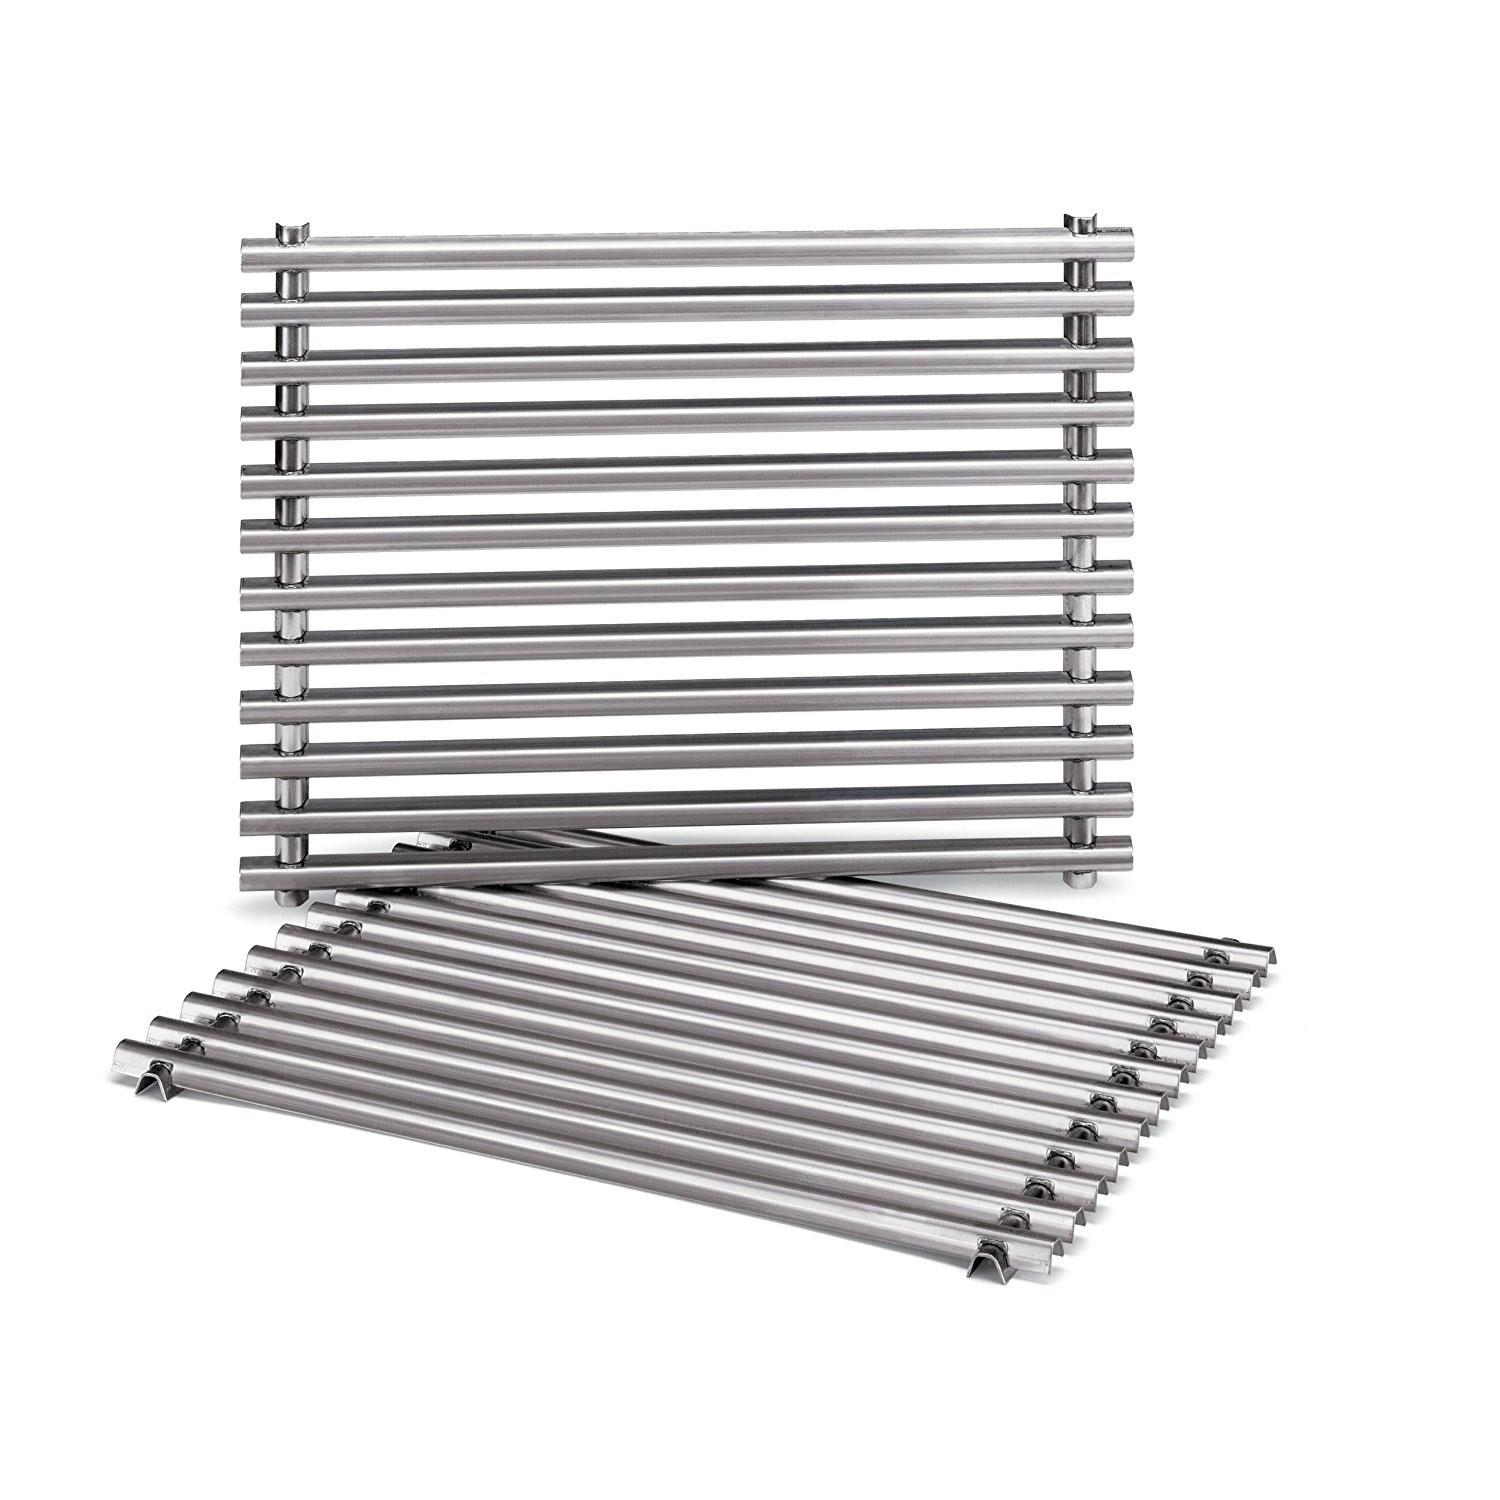 STAINLESS STEEL COOKING GRATES: SPIRIT 200 (W/ SIDE MOUNTED CONTROL PANEL), SPIRIT 500 AND GENESIS SILVER A